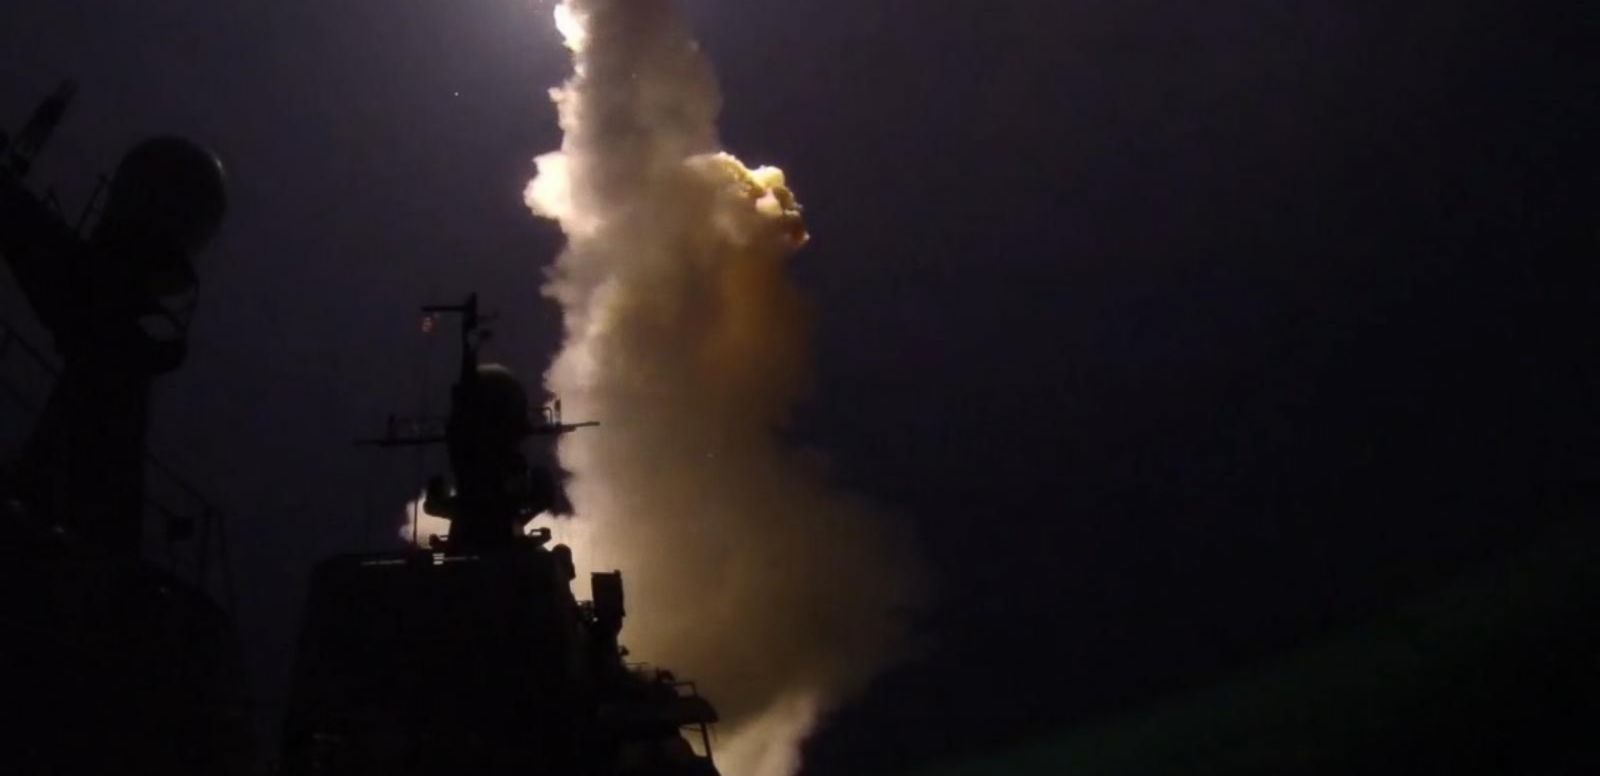 VIDEO: Russia Fires More Than 24 Cruise Missiles Into Syria